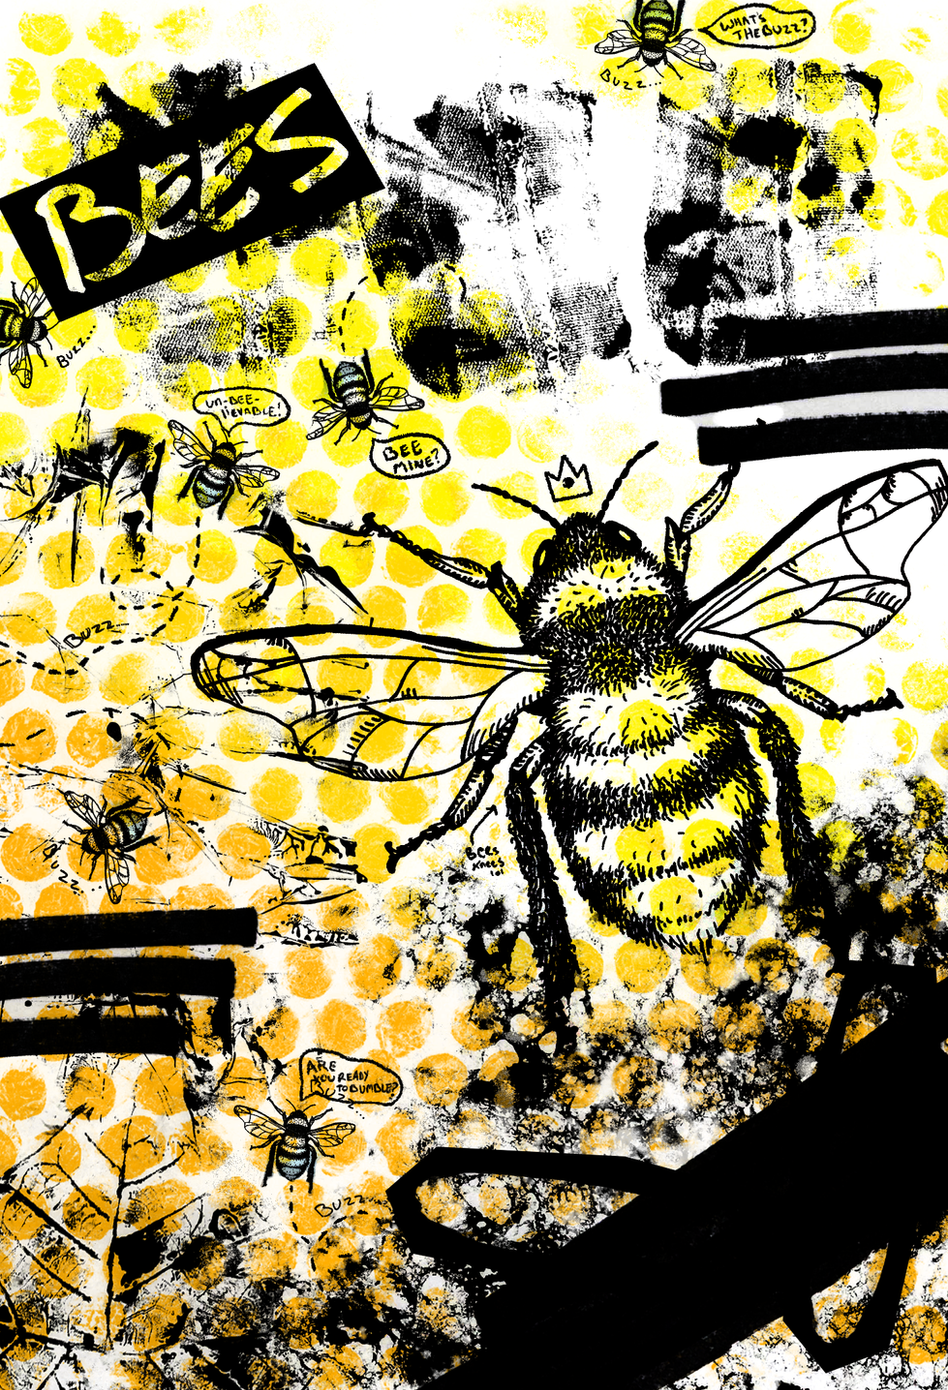 Bees? A Study in Textures and Bee Puns